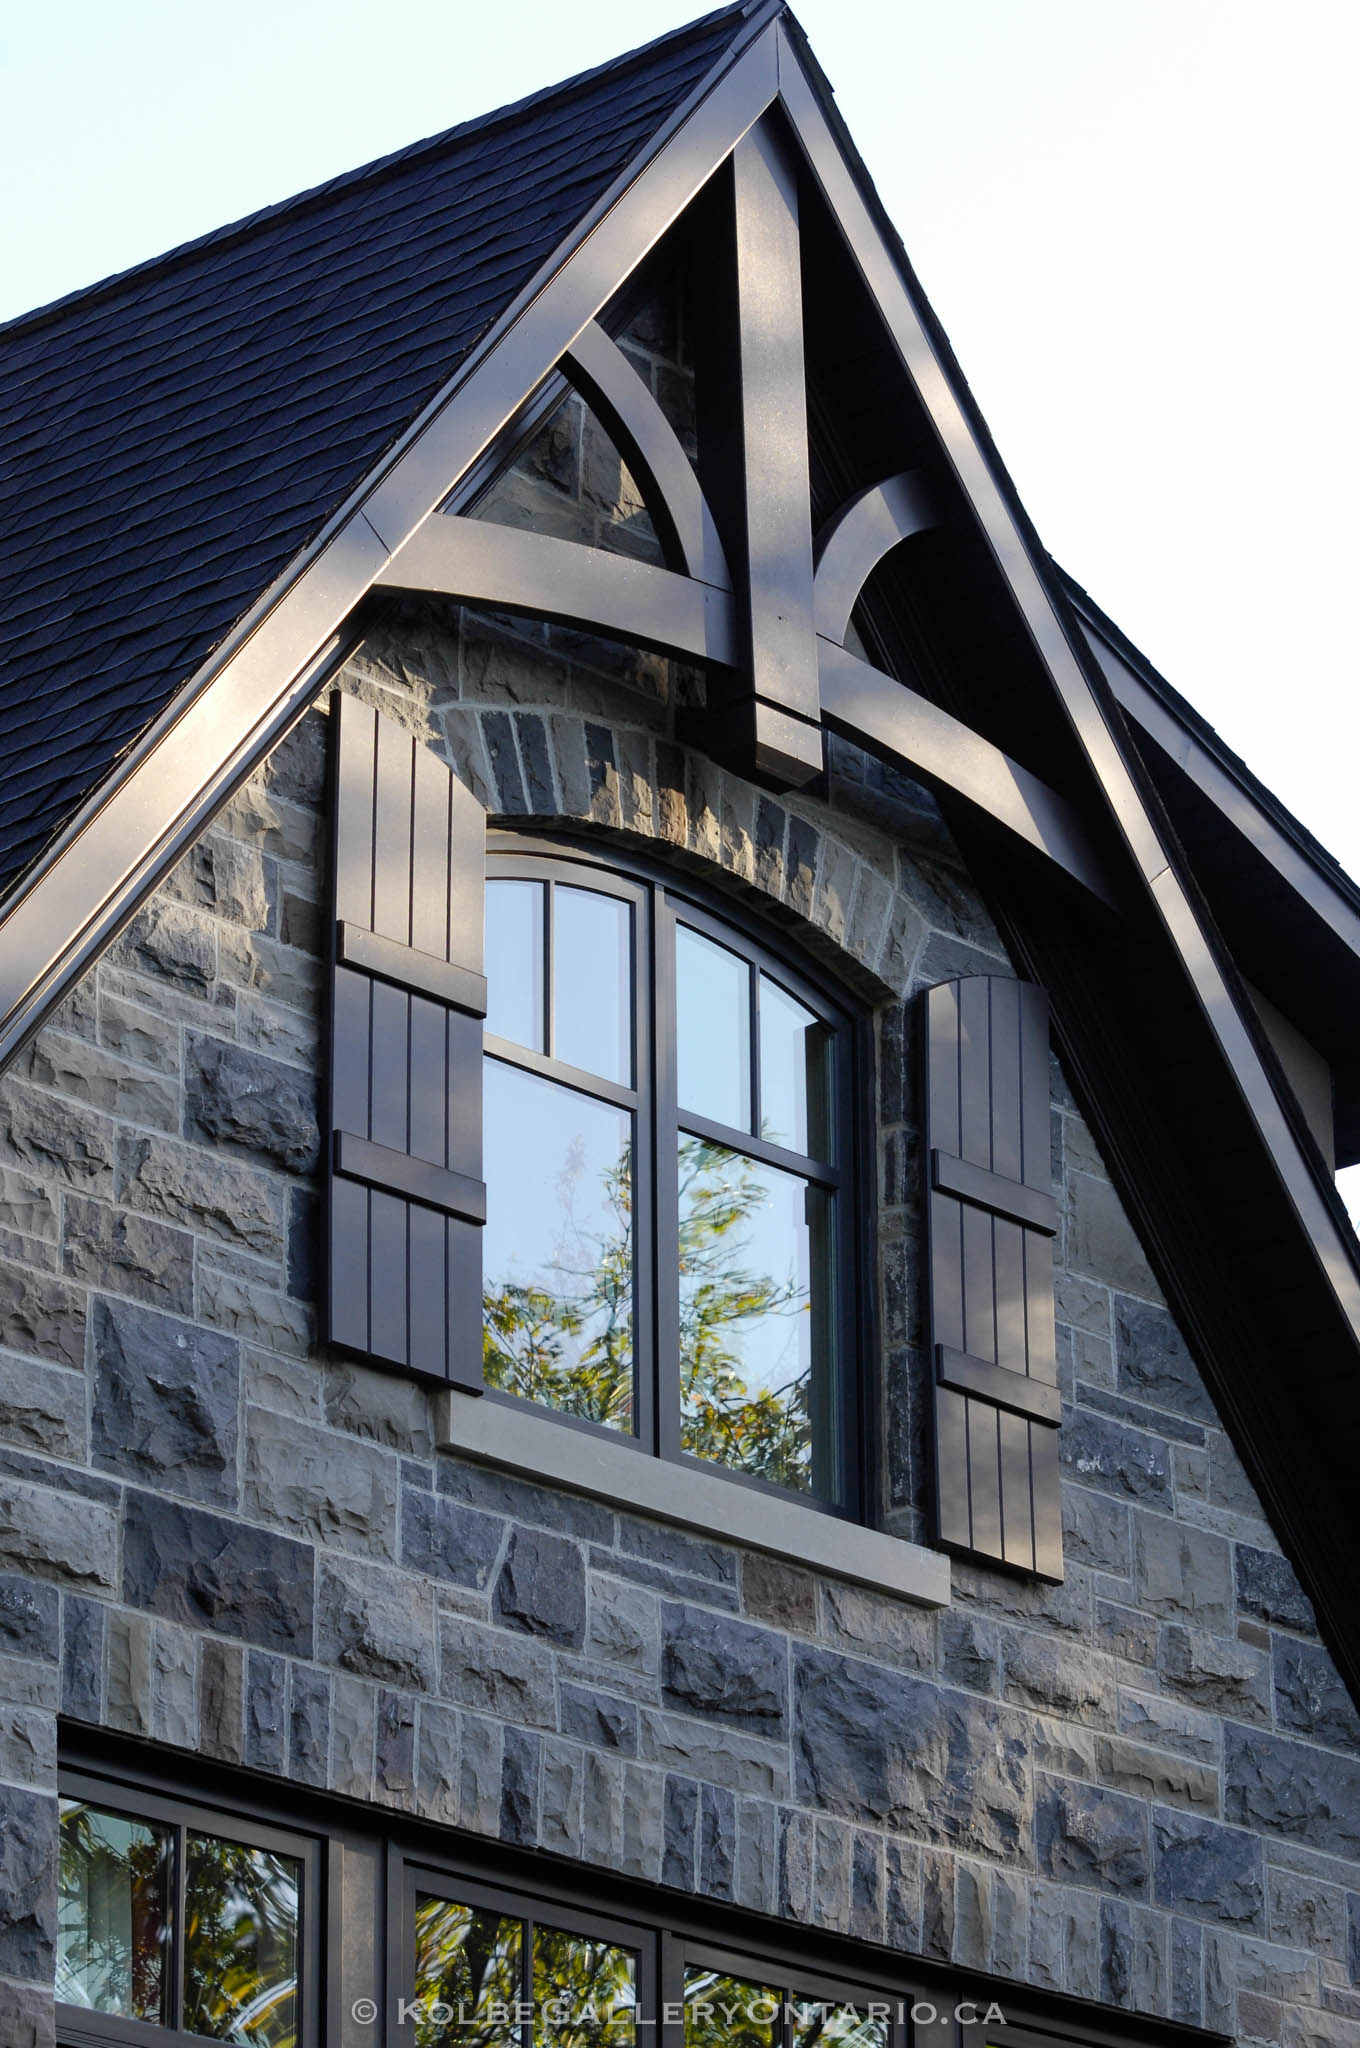 KolbeGalleryOntario.ca-windows-and-doors---20141009-090220